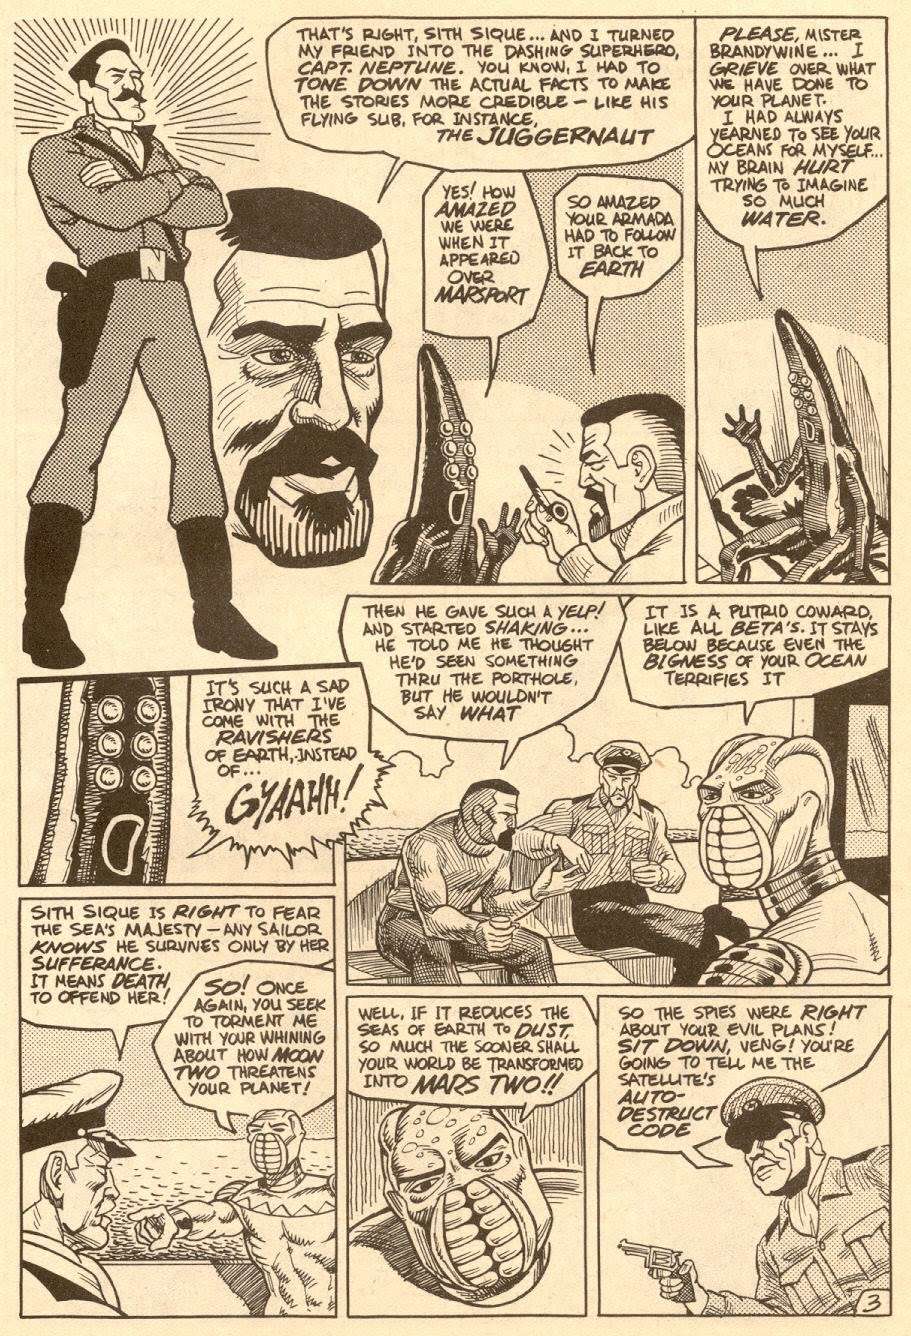 Commies from Mars: The Red Planet issue 6 - Page 22